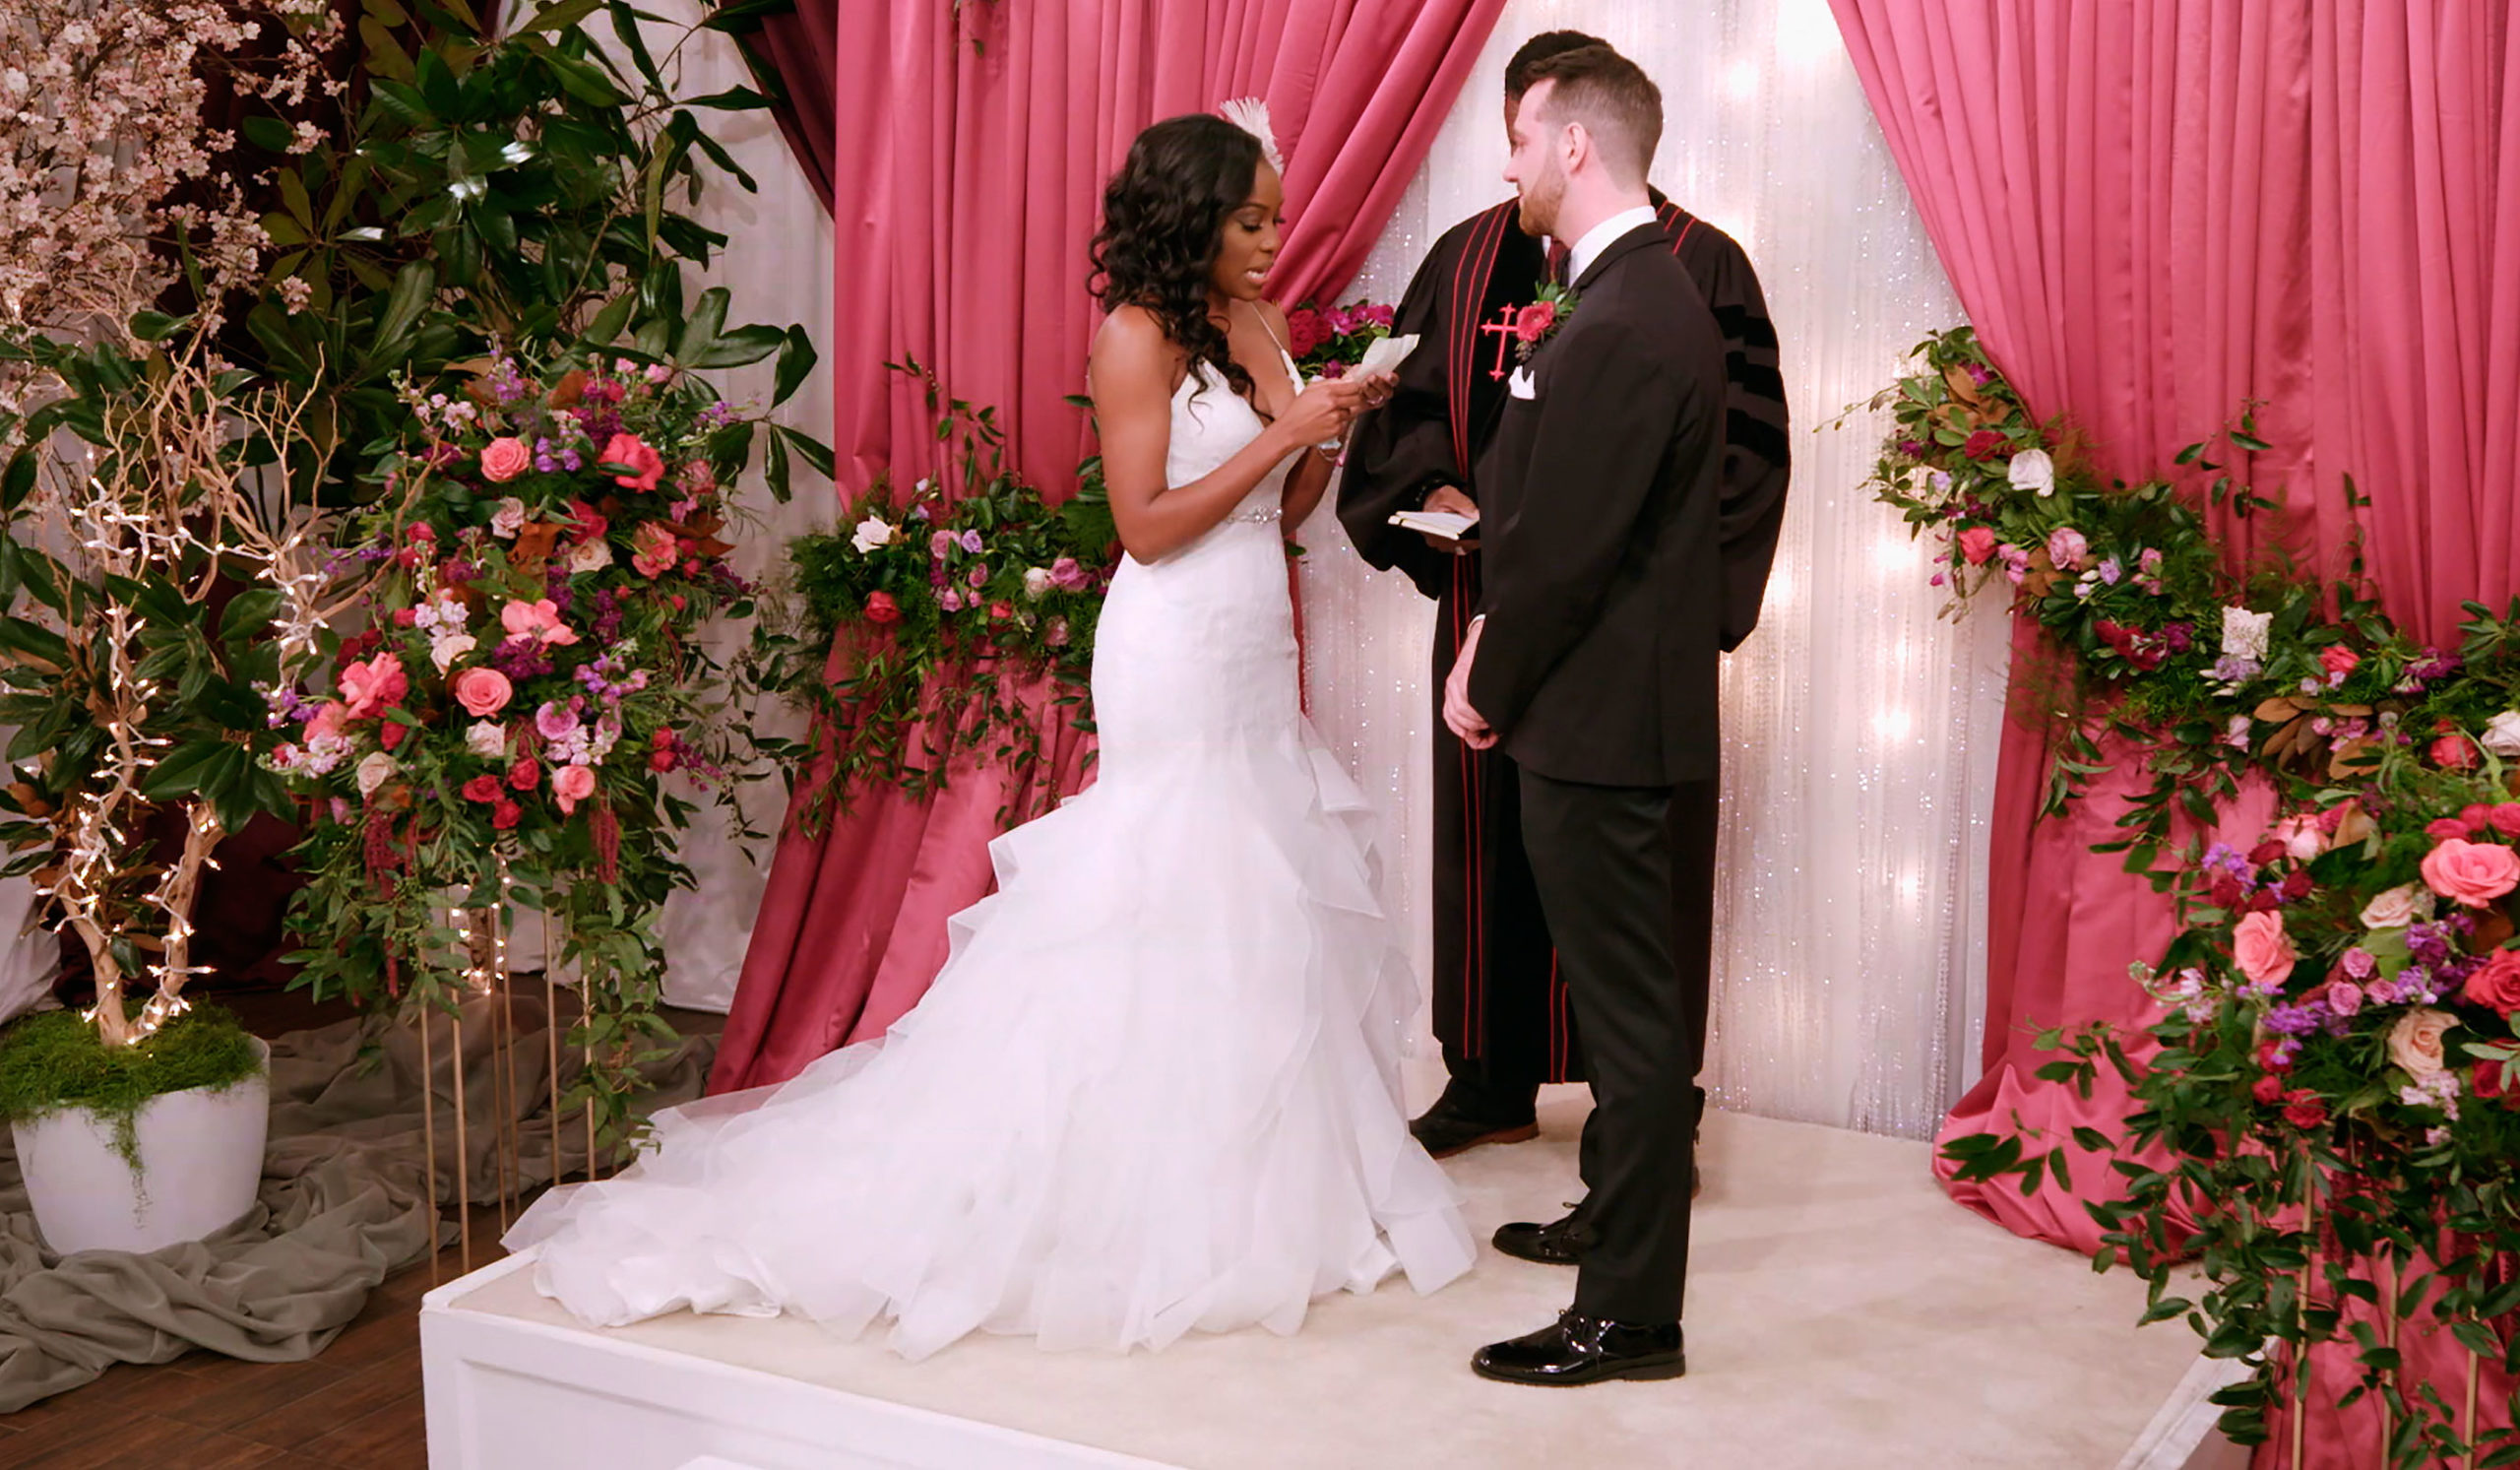 Netflix: Love Is Blind: Lauren & Cameron's Vows On The Next Episode, Take A Look